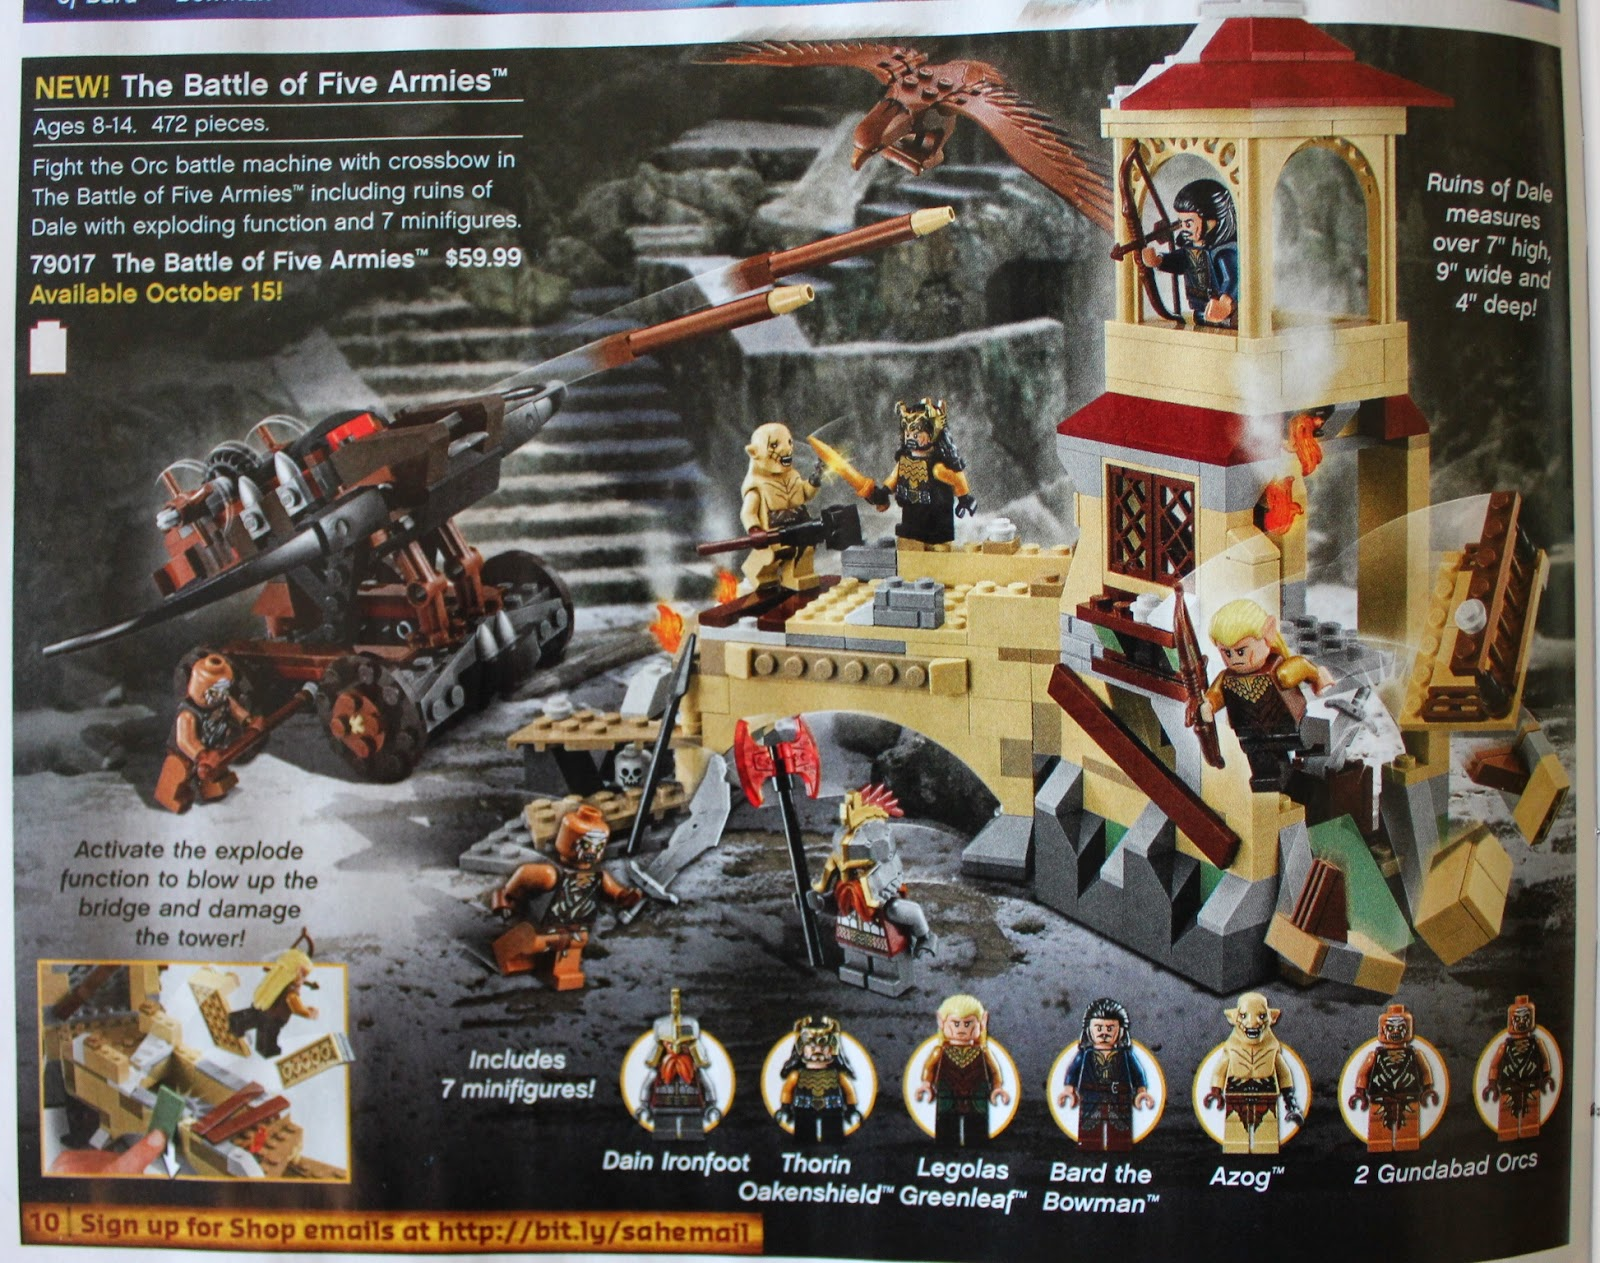 Sons of twilight lego hobbit fall 2014 battle of five armies sets